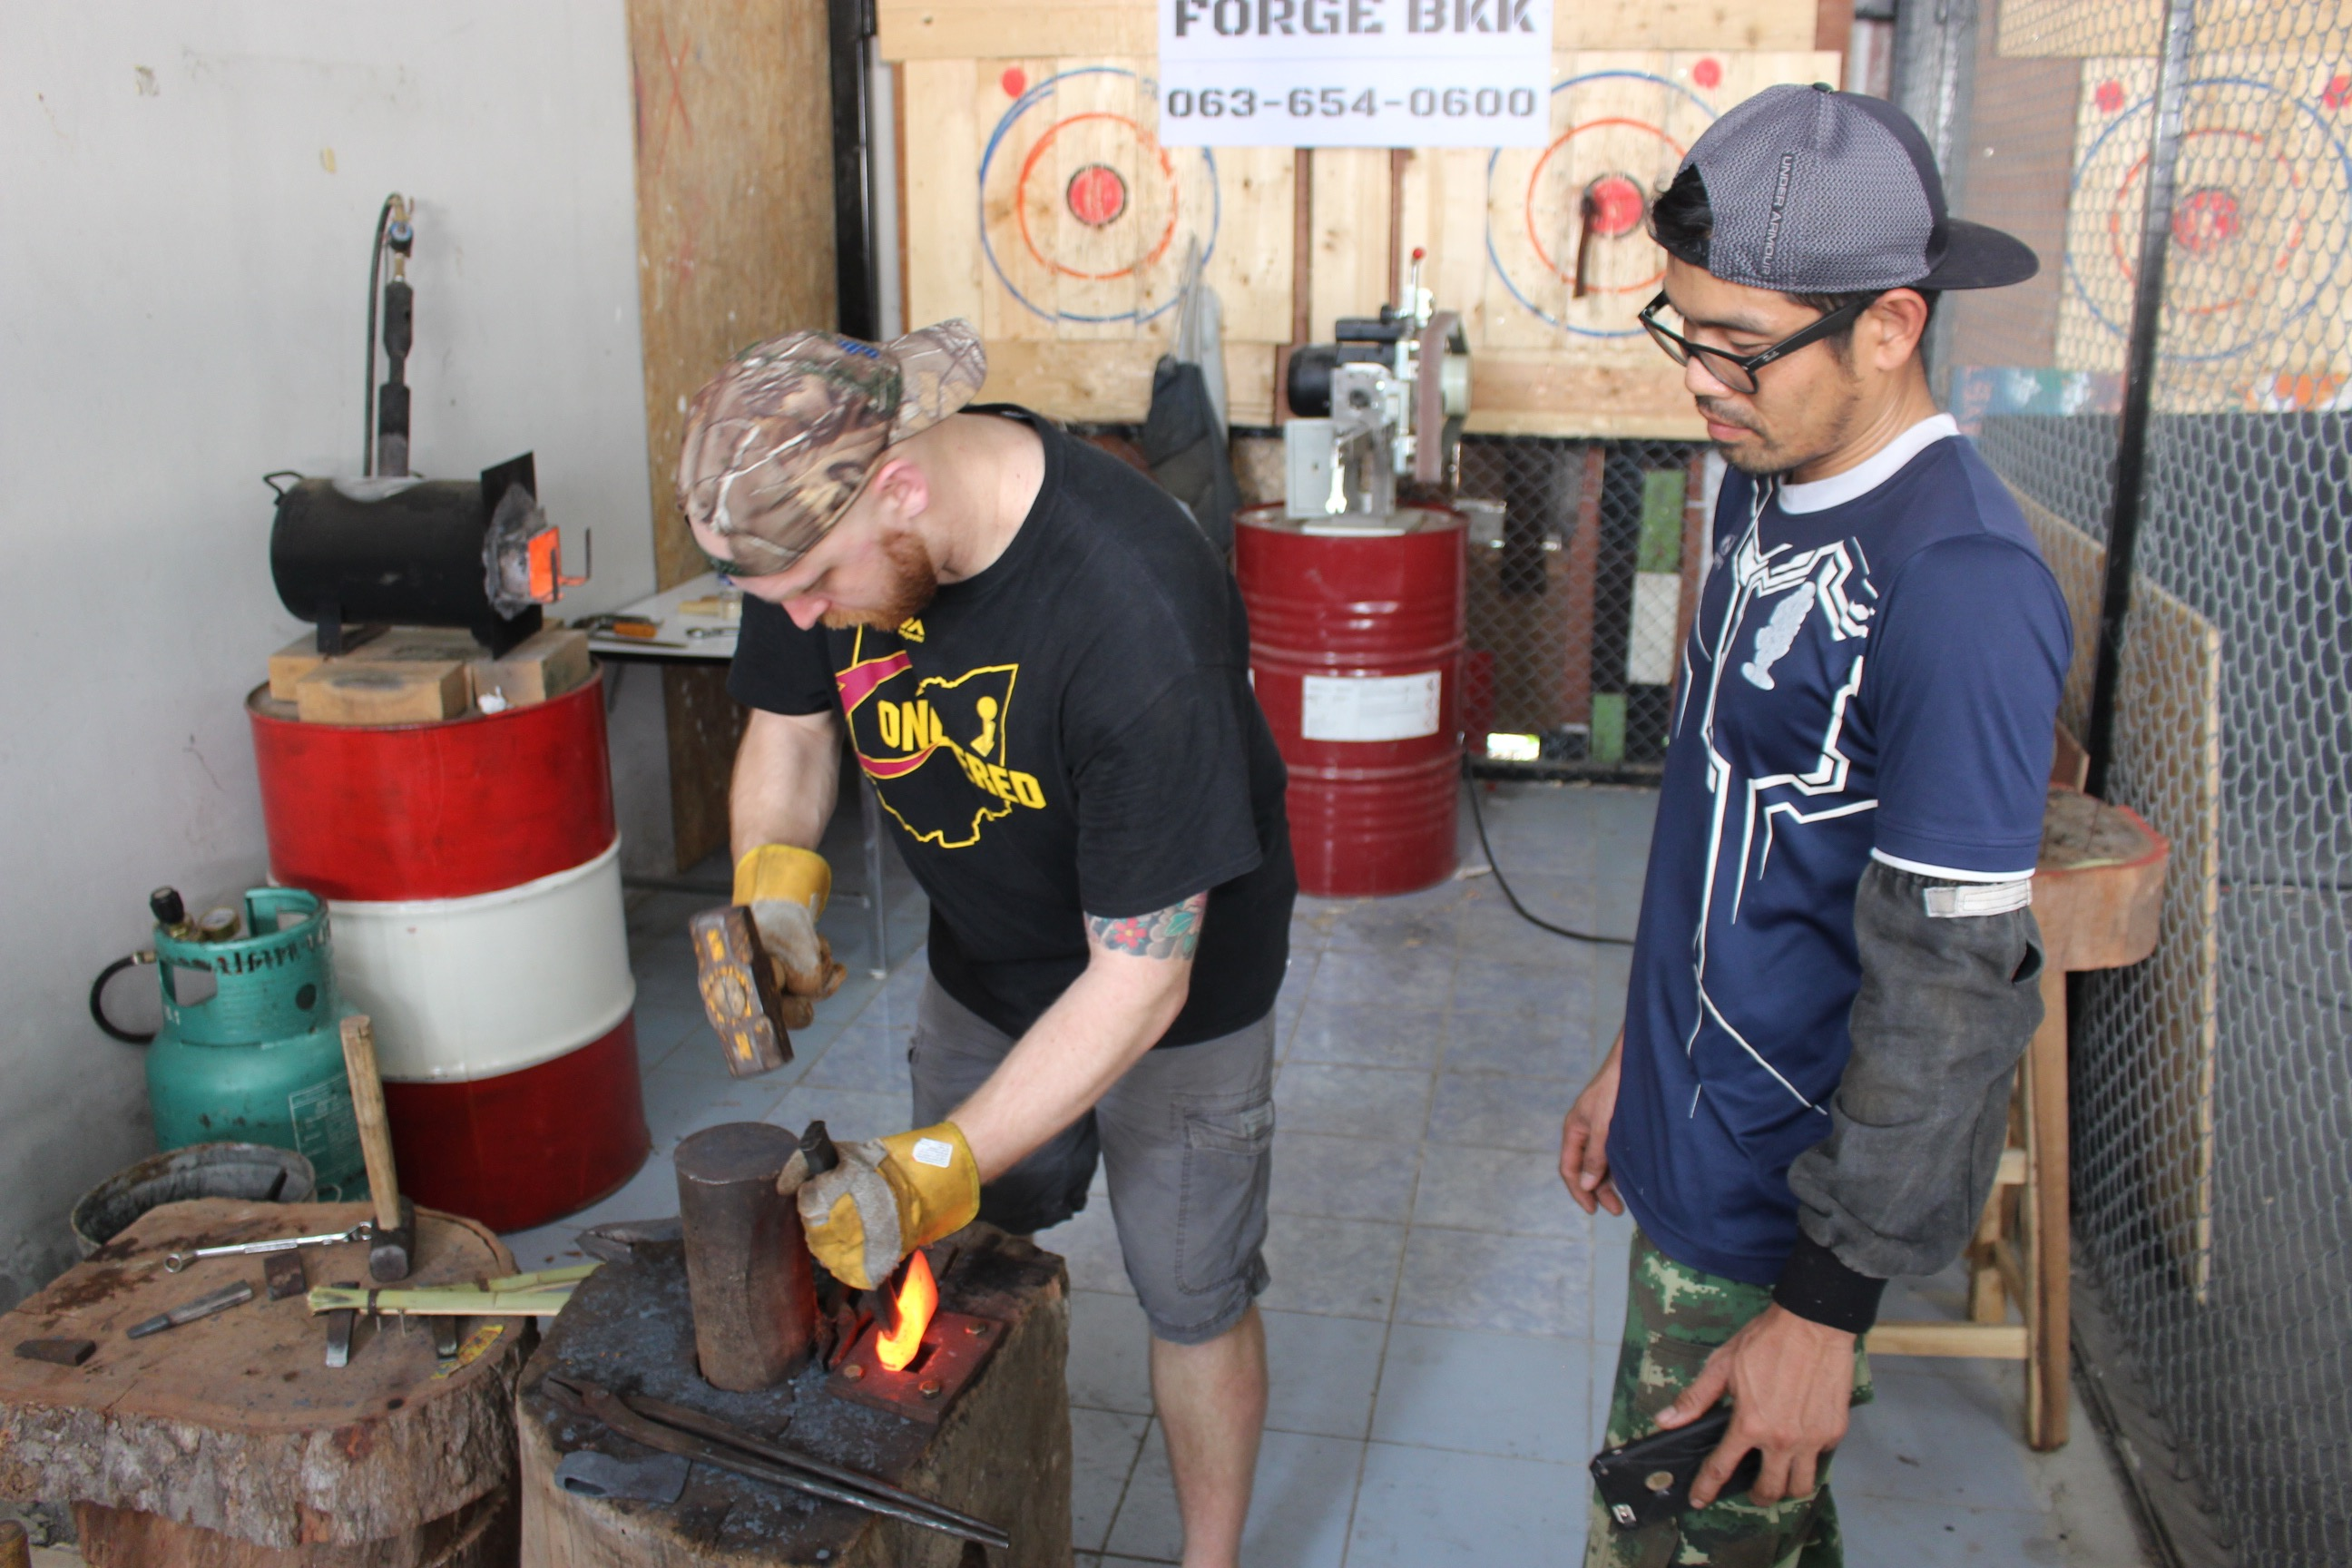 Blacksmithing Knife Making in bangkok Thailand